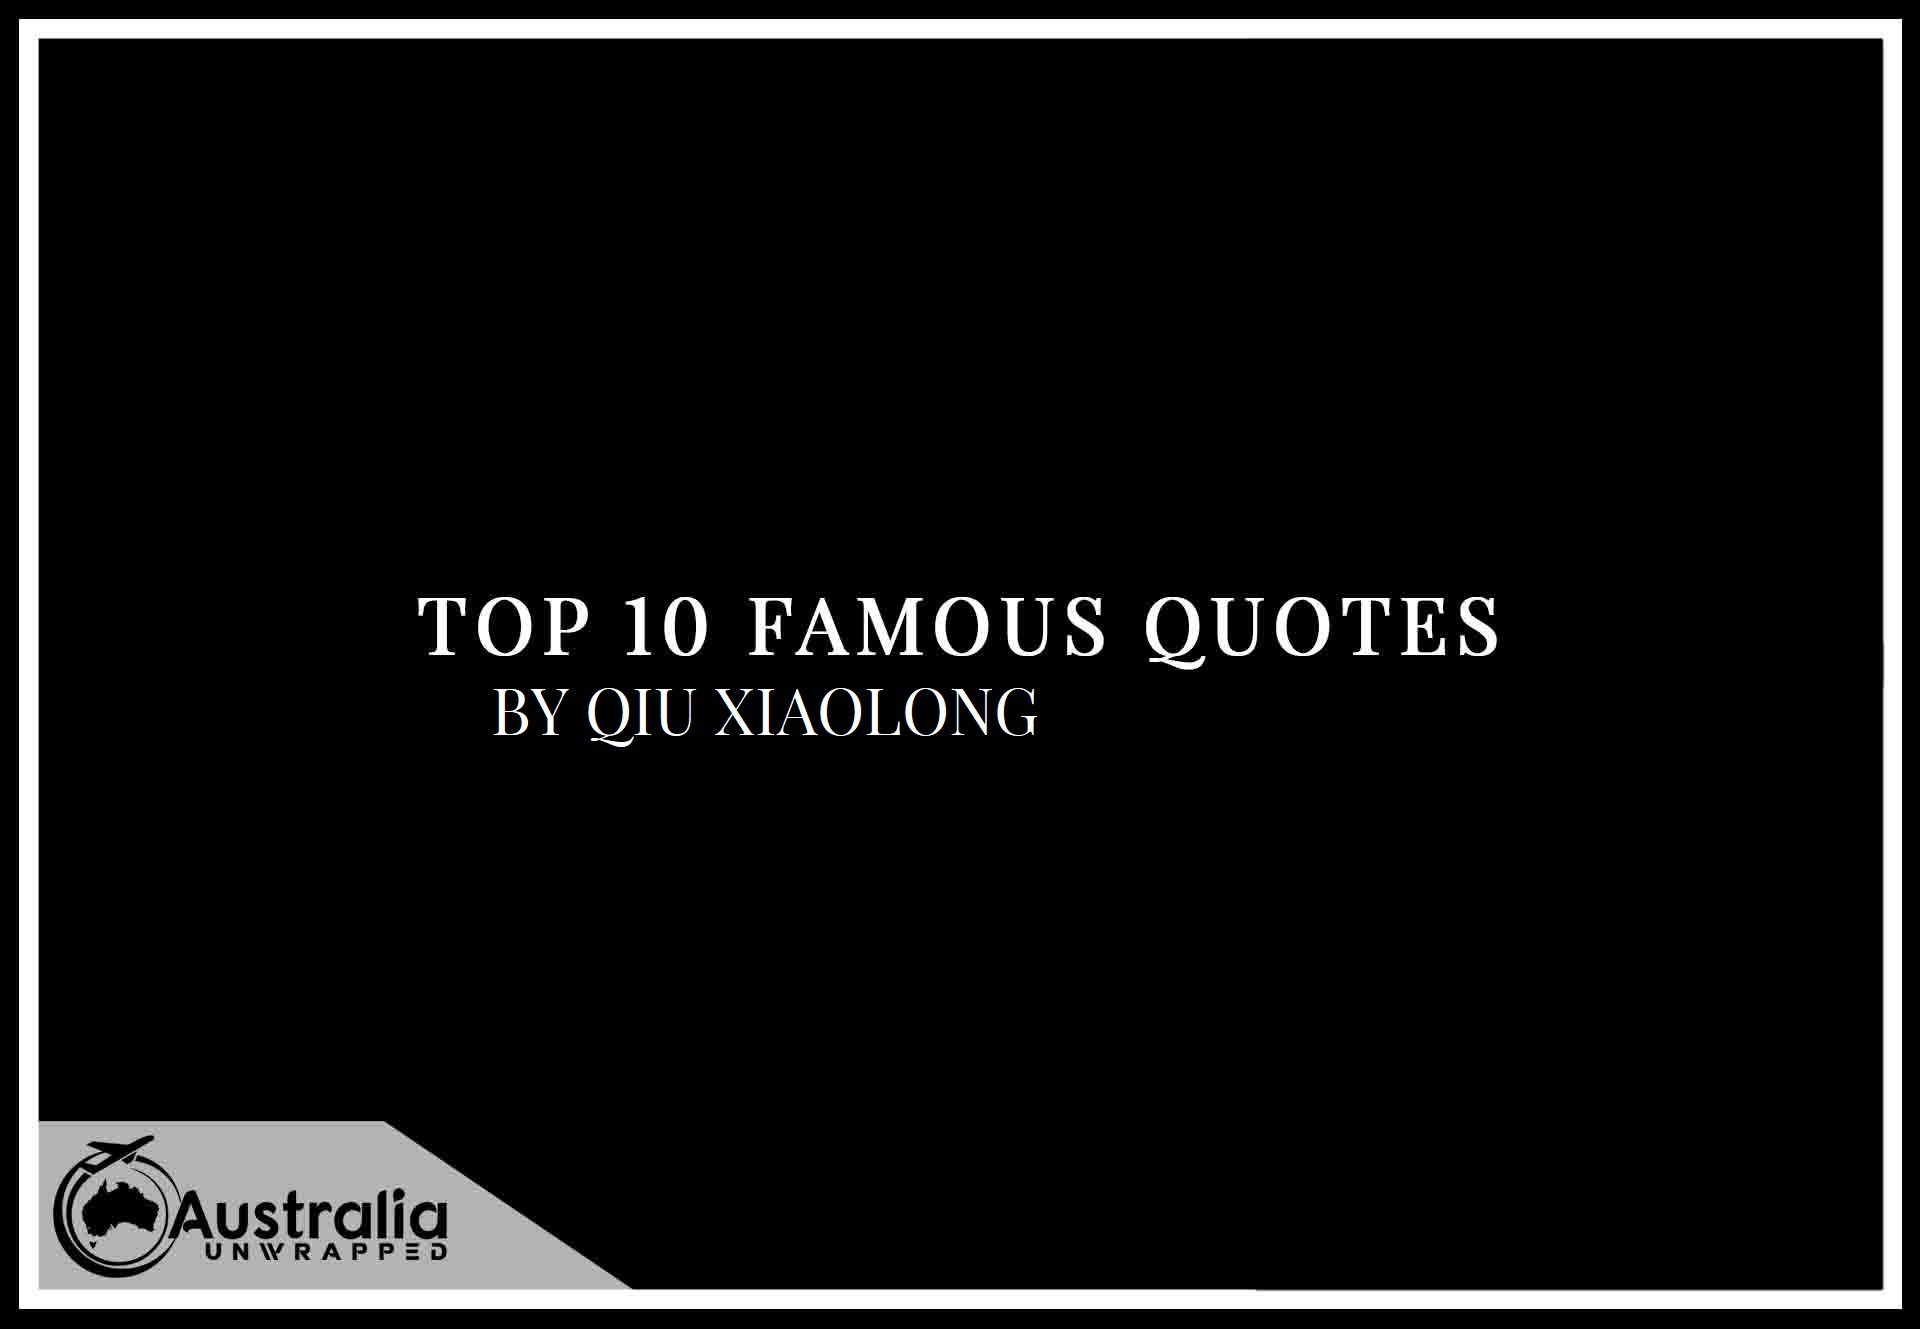 Top 10 Famous Quotes by Author Qiu Xiaolong